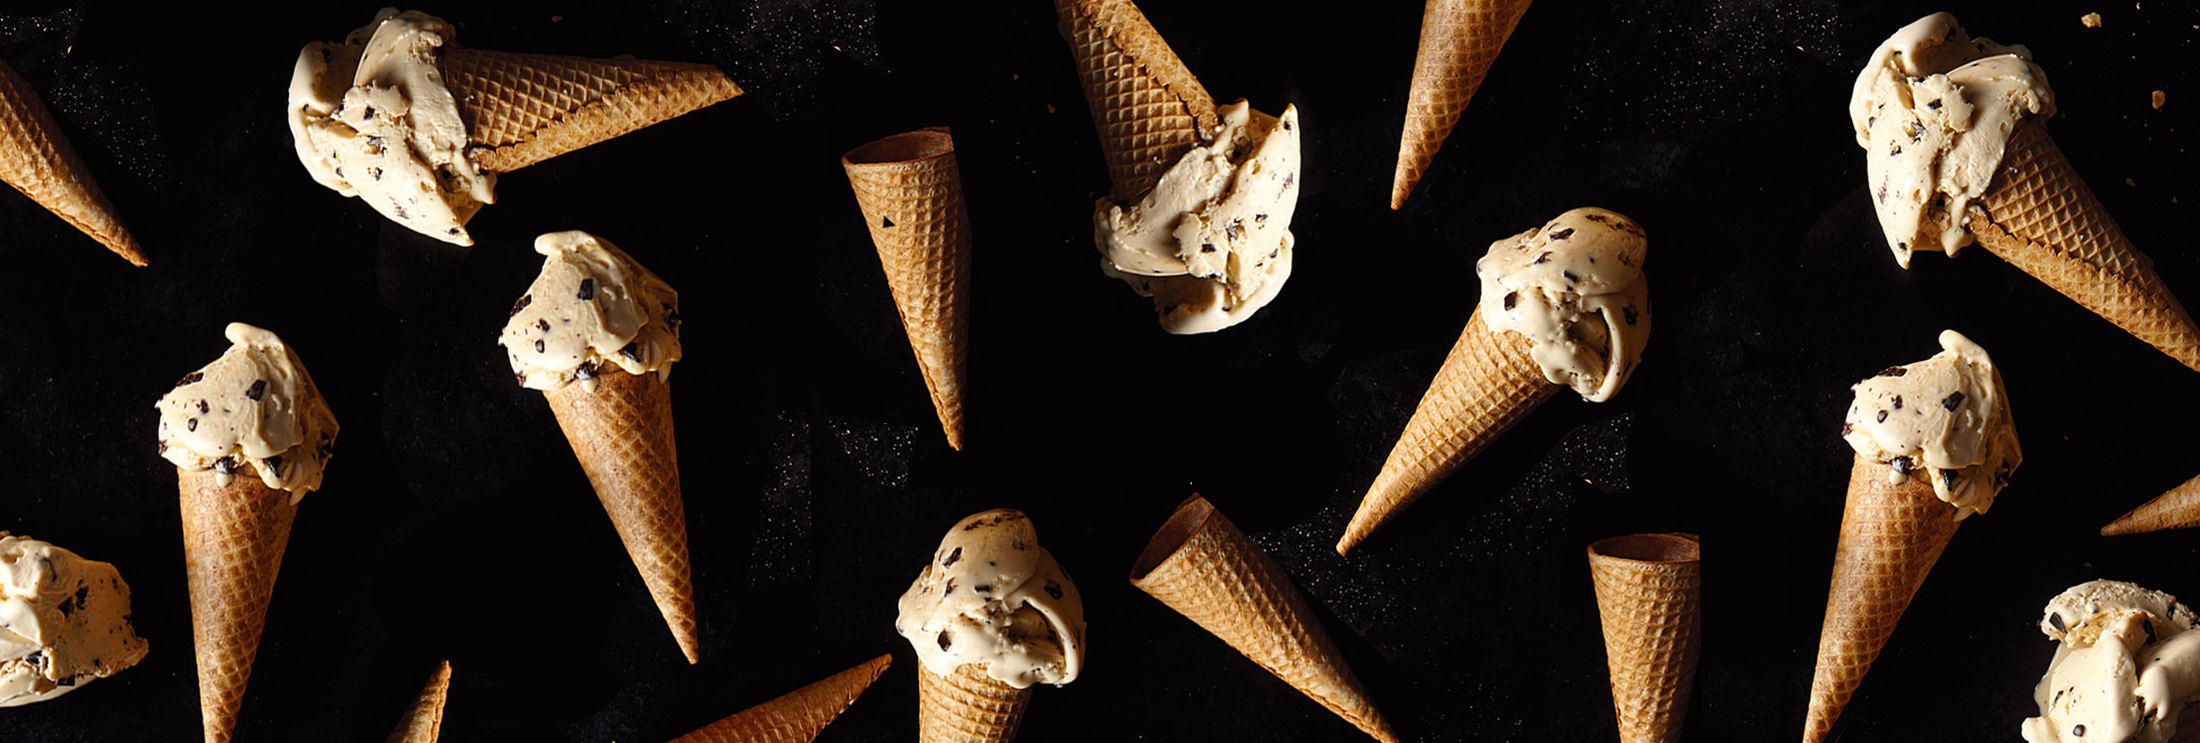 TODAY ONLY: Free Kids Cones at Haagen-Dazs!